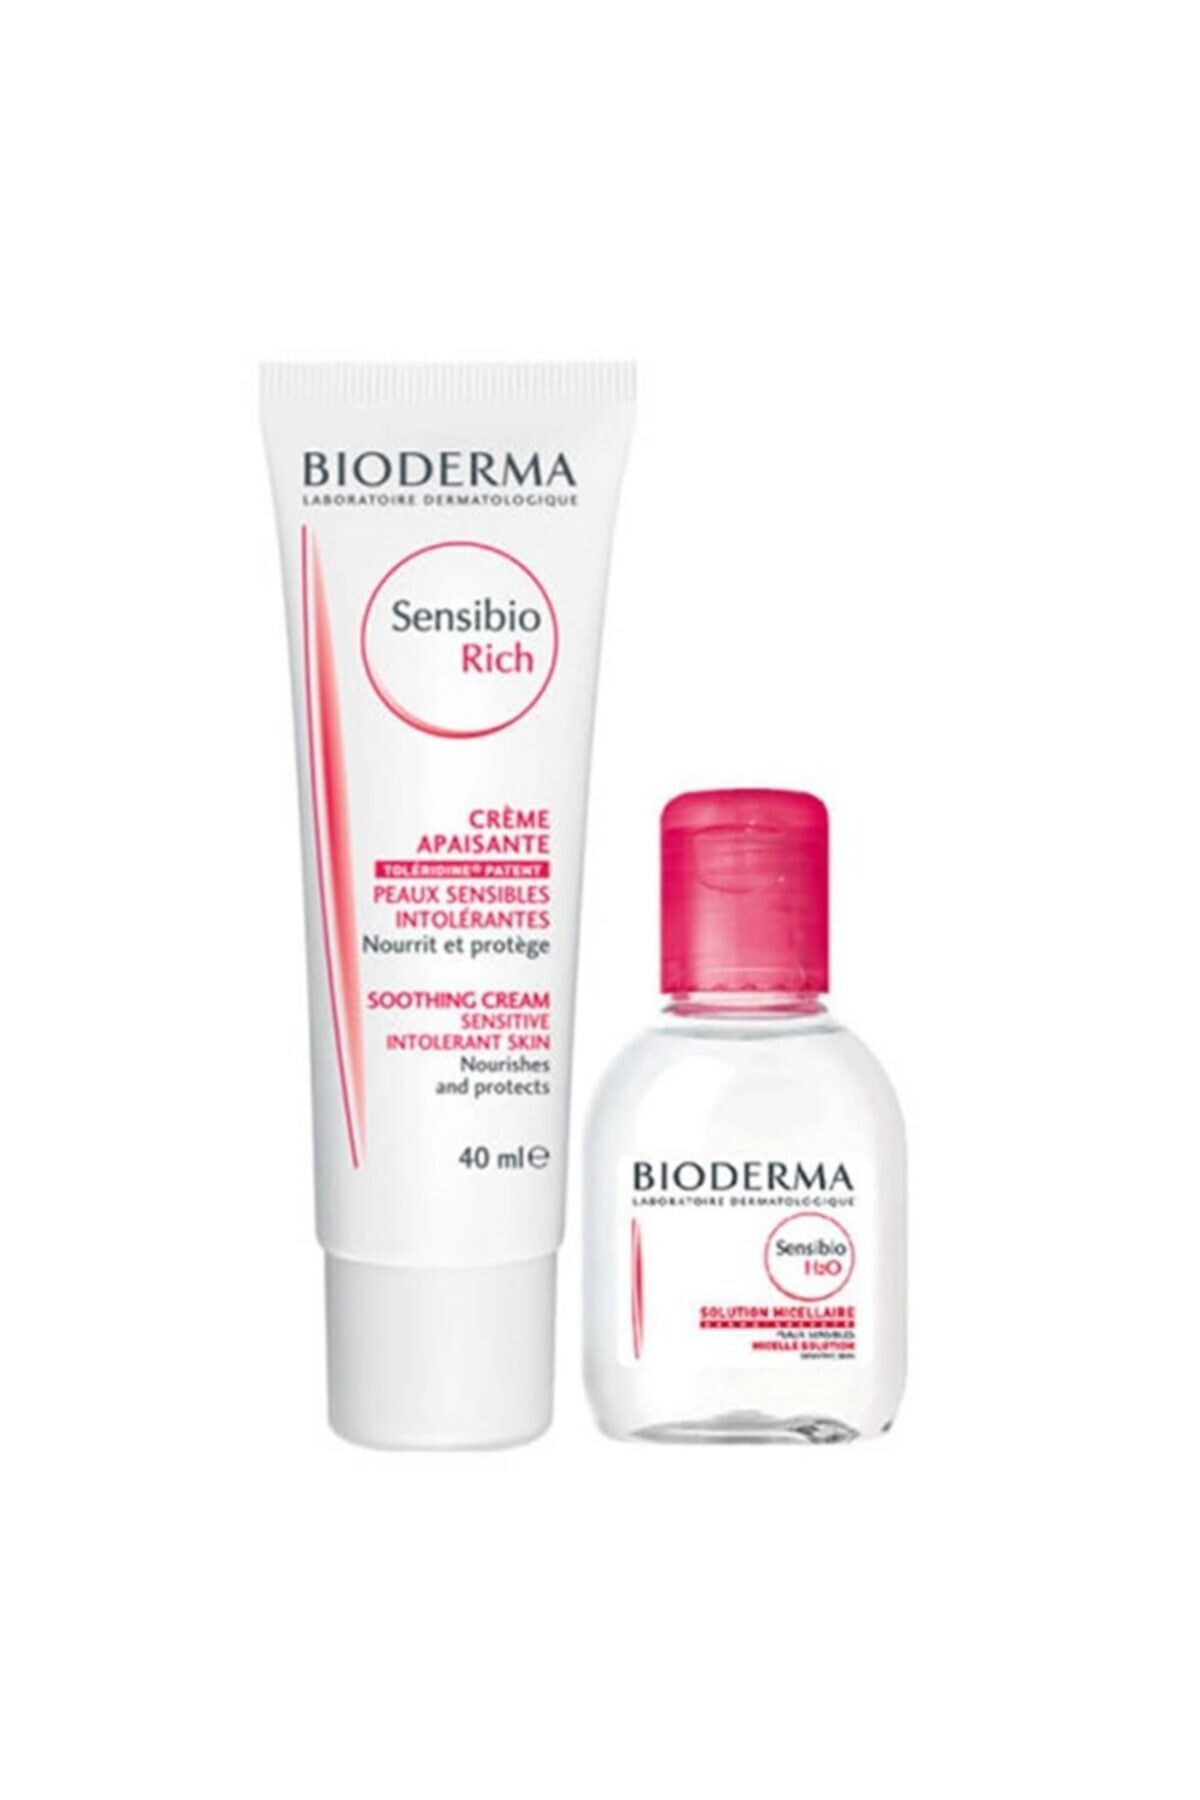 Bioderma Sensibio Rich Cream 40 Ml + Sensibio H2o 100 Ml Skt:2021 1